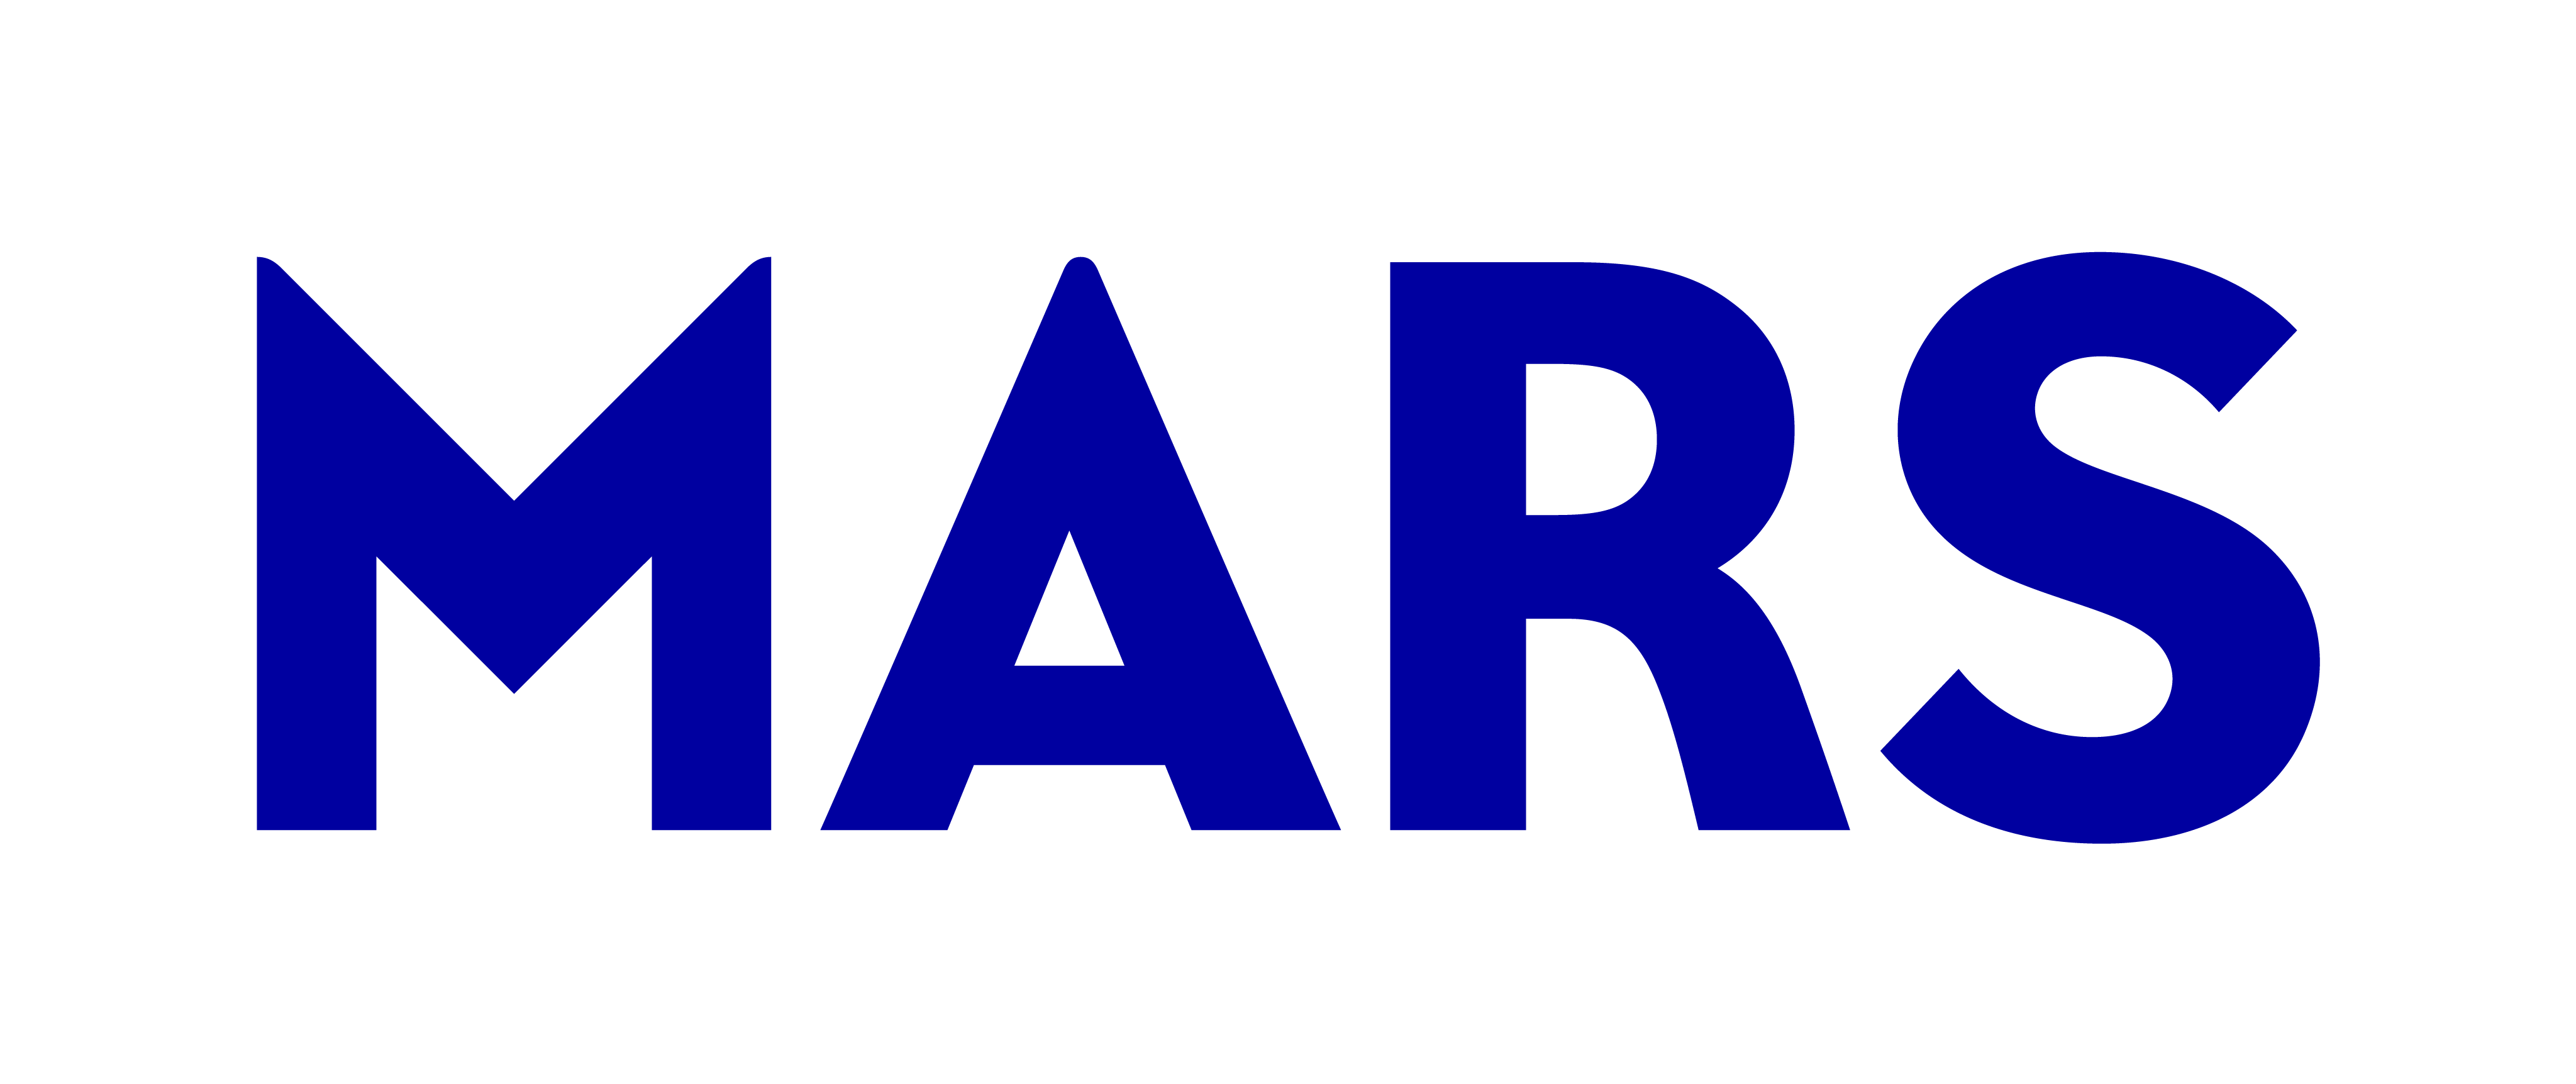 Mars%20wordmark%20rgb%20blue